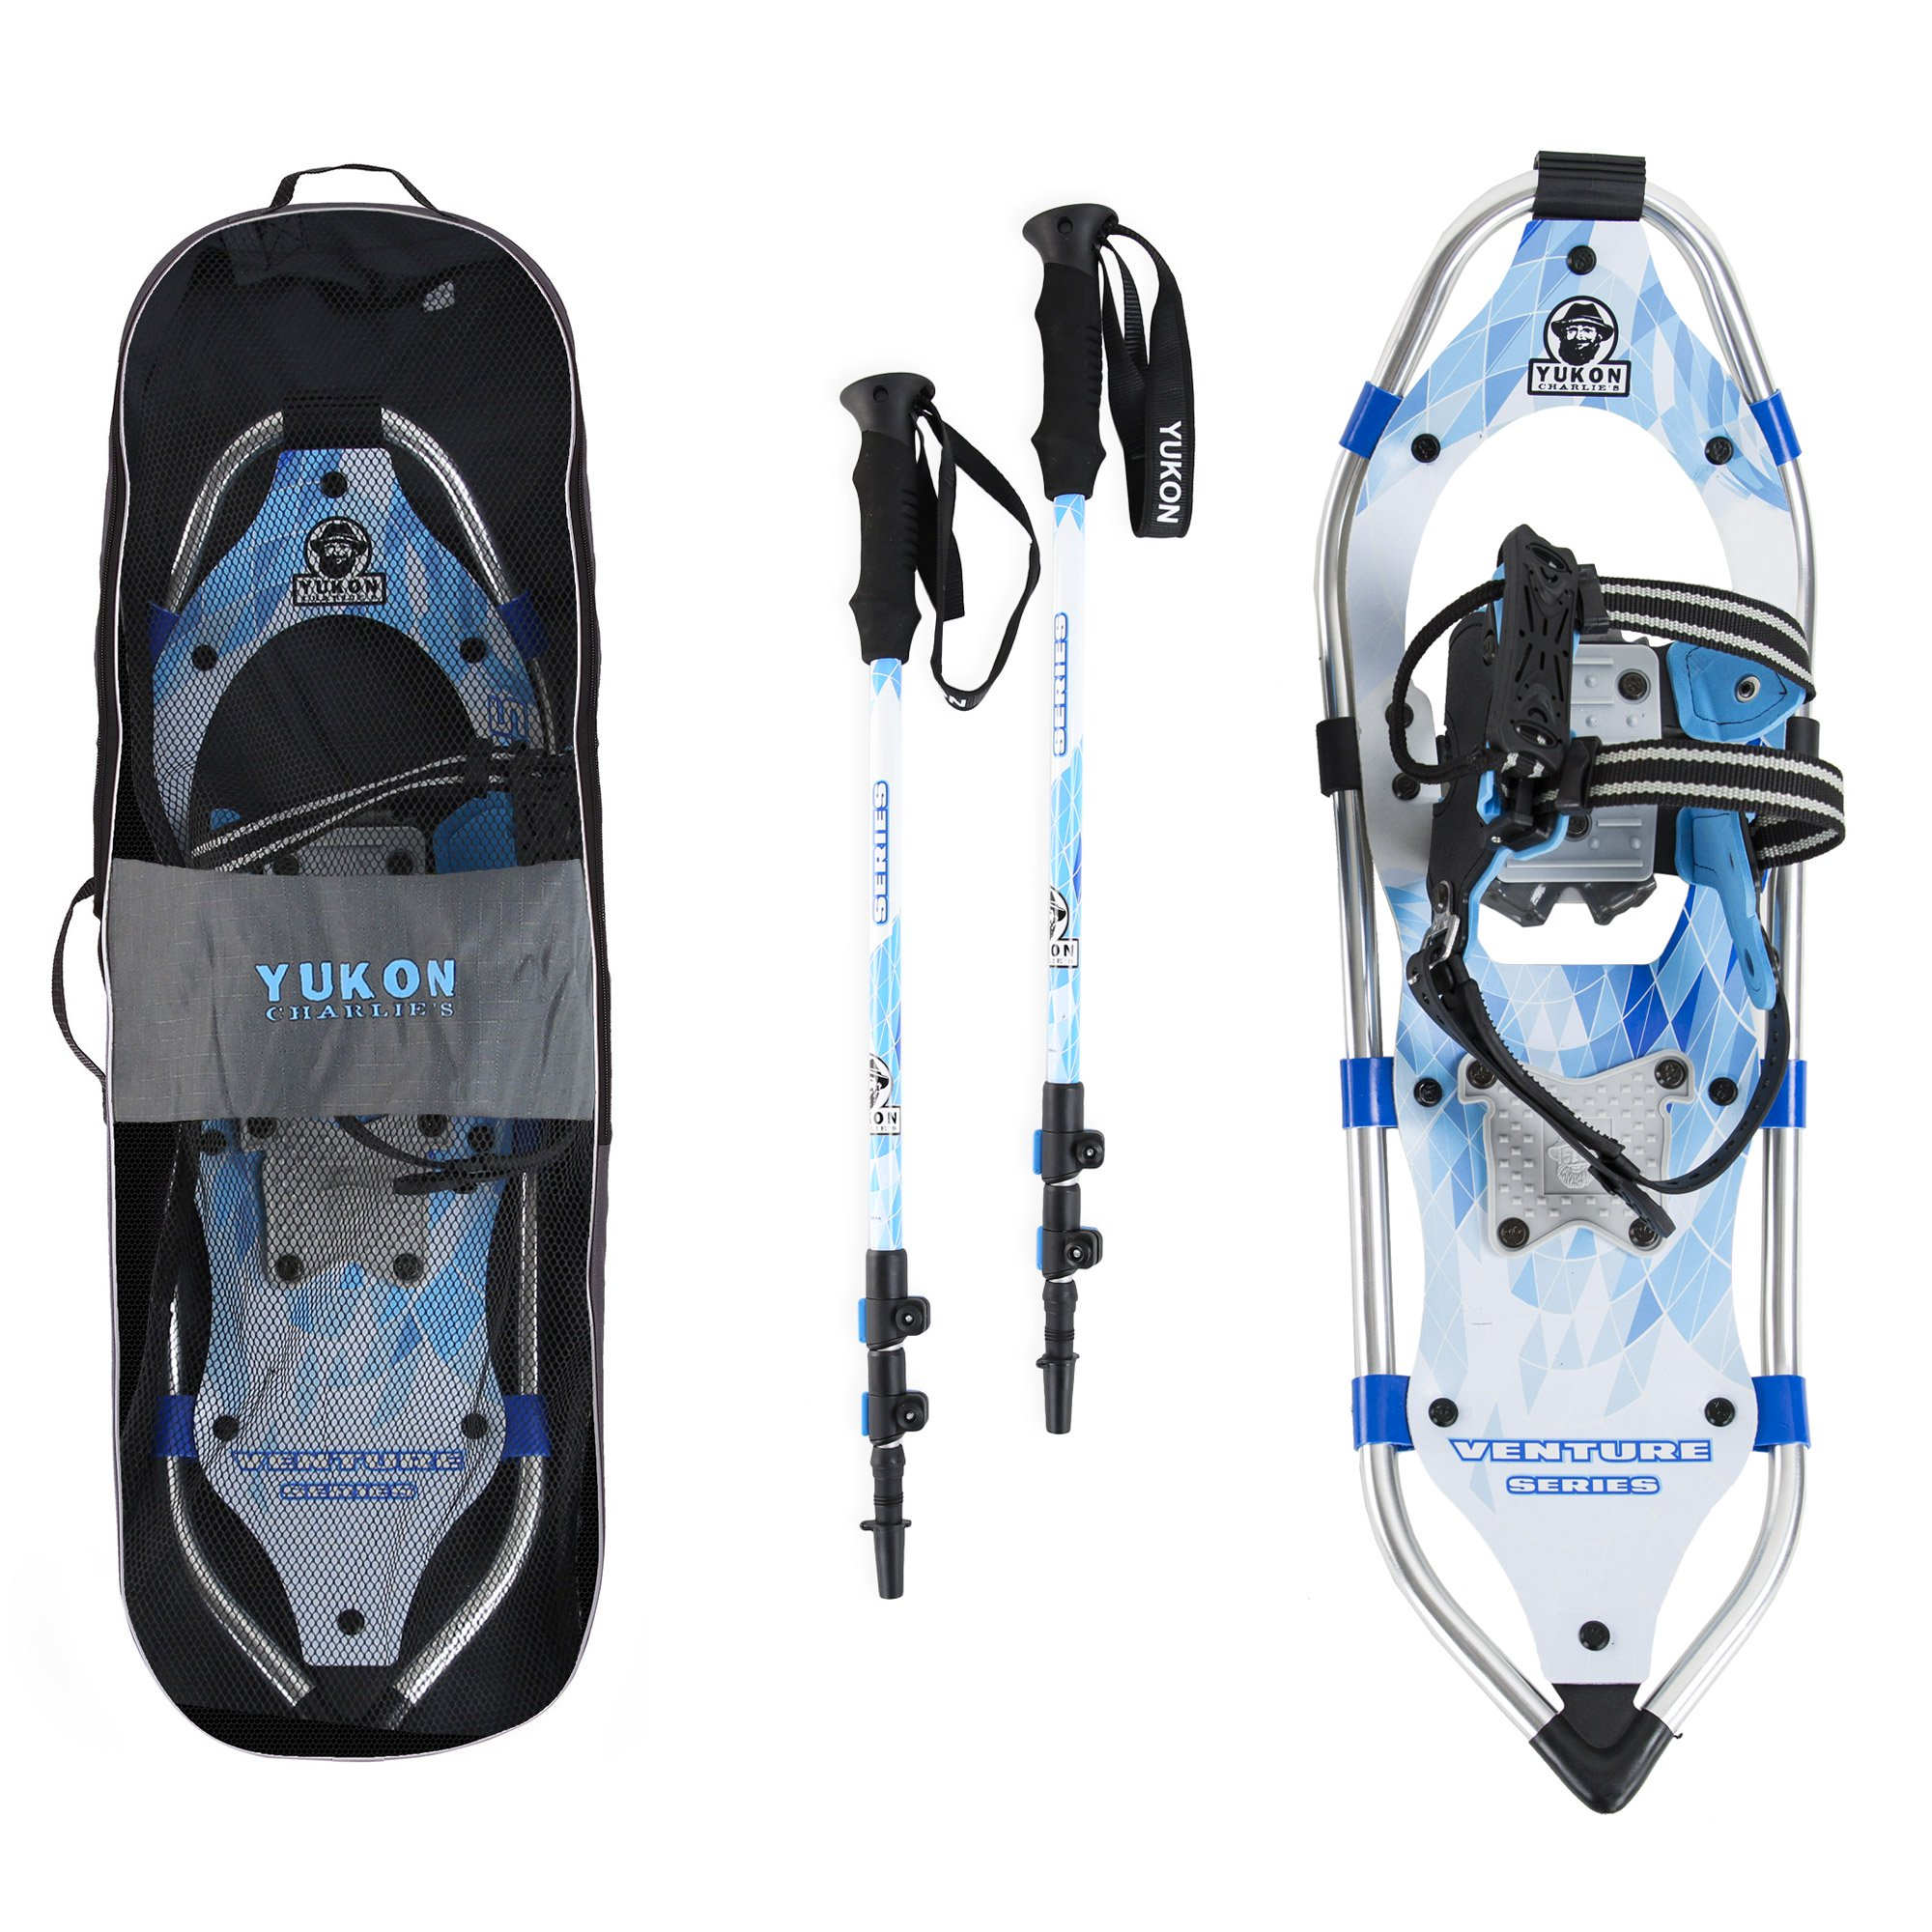 Yukon Charlie's Advanced 8 x 21 Inch Women's Snowshoe Kit with Poles and Bag by Kwik Tek